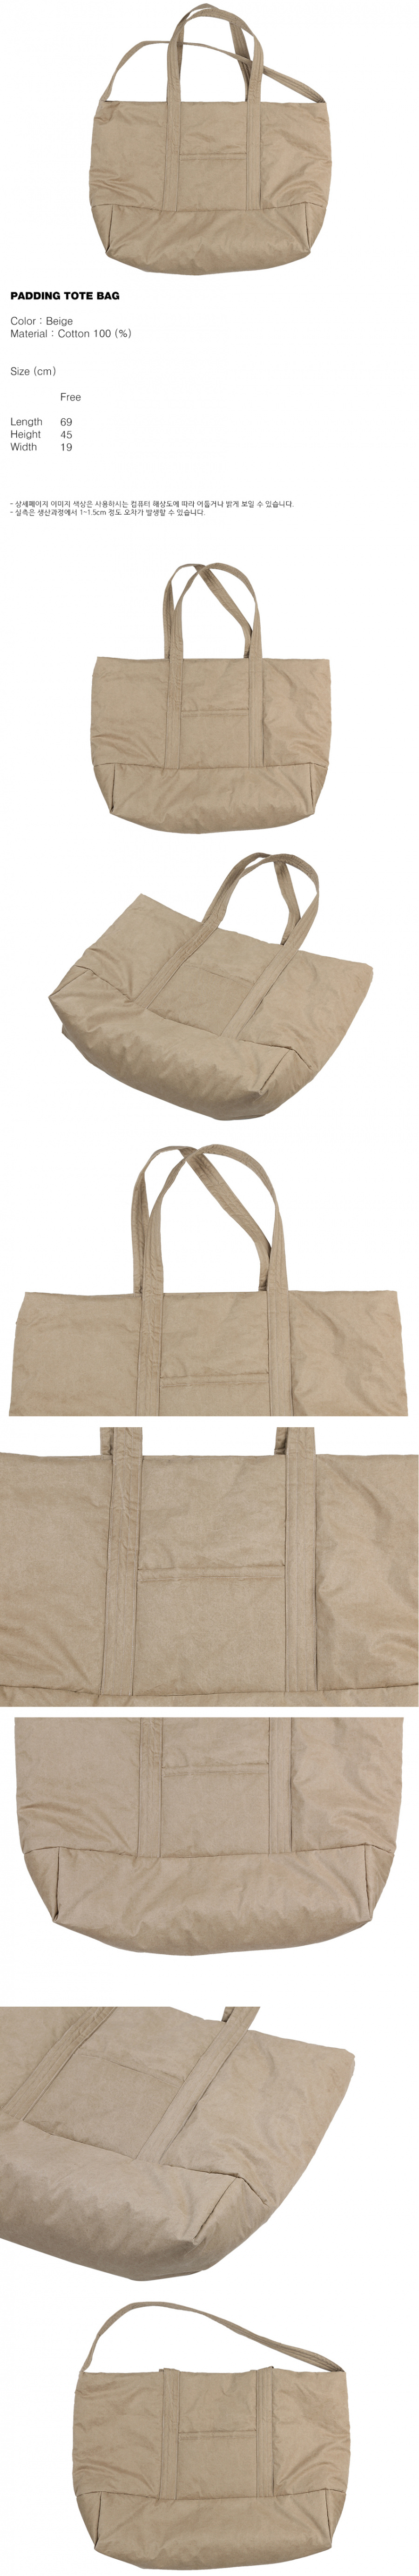 아조바이아조 오리지널 라벨(AJOBYAJO ORIGINAL LABEL) Padding Tote Bag [Beige]